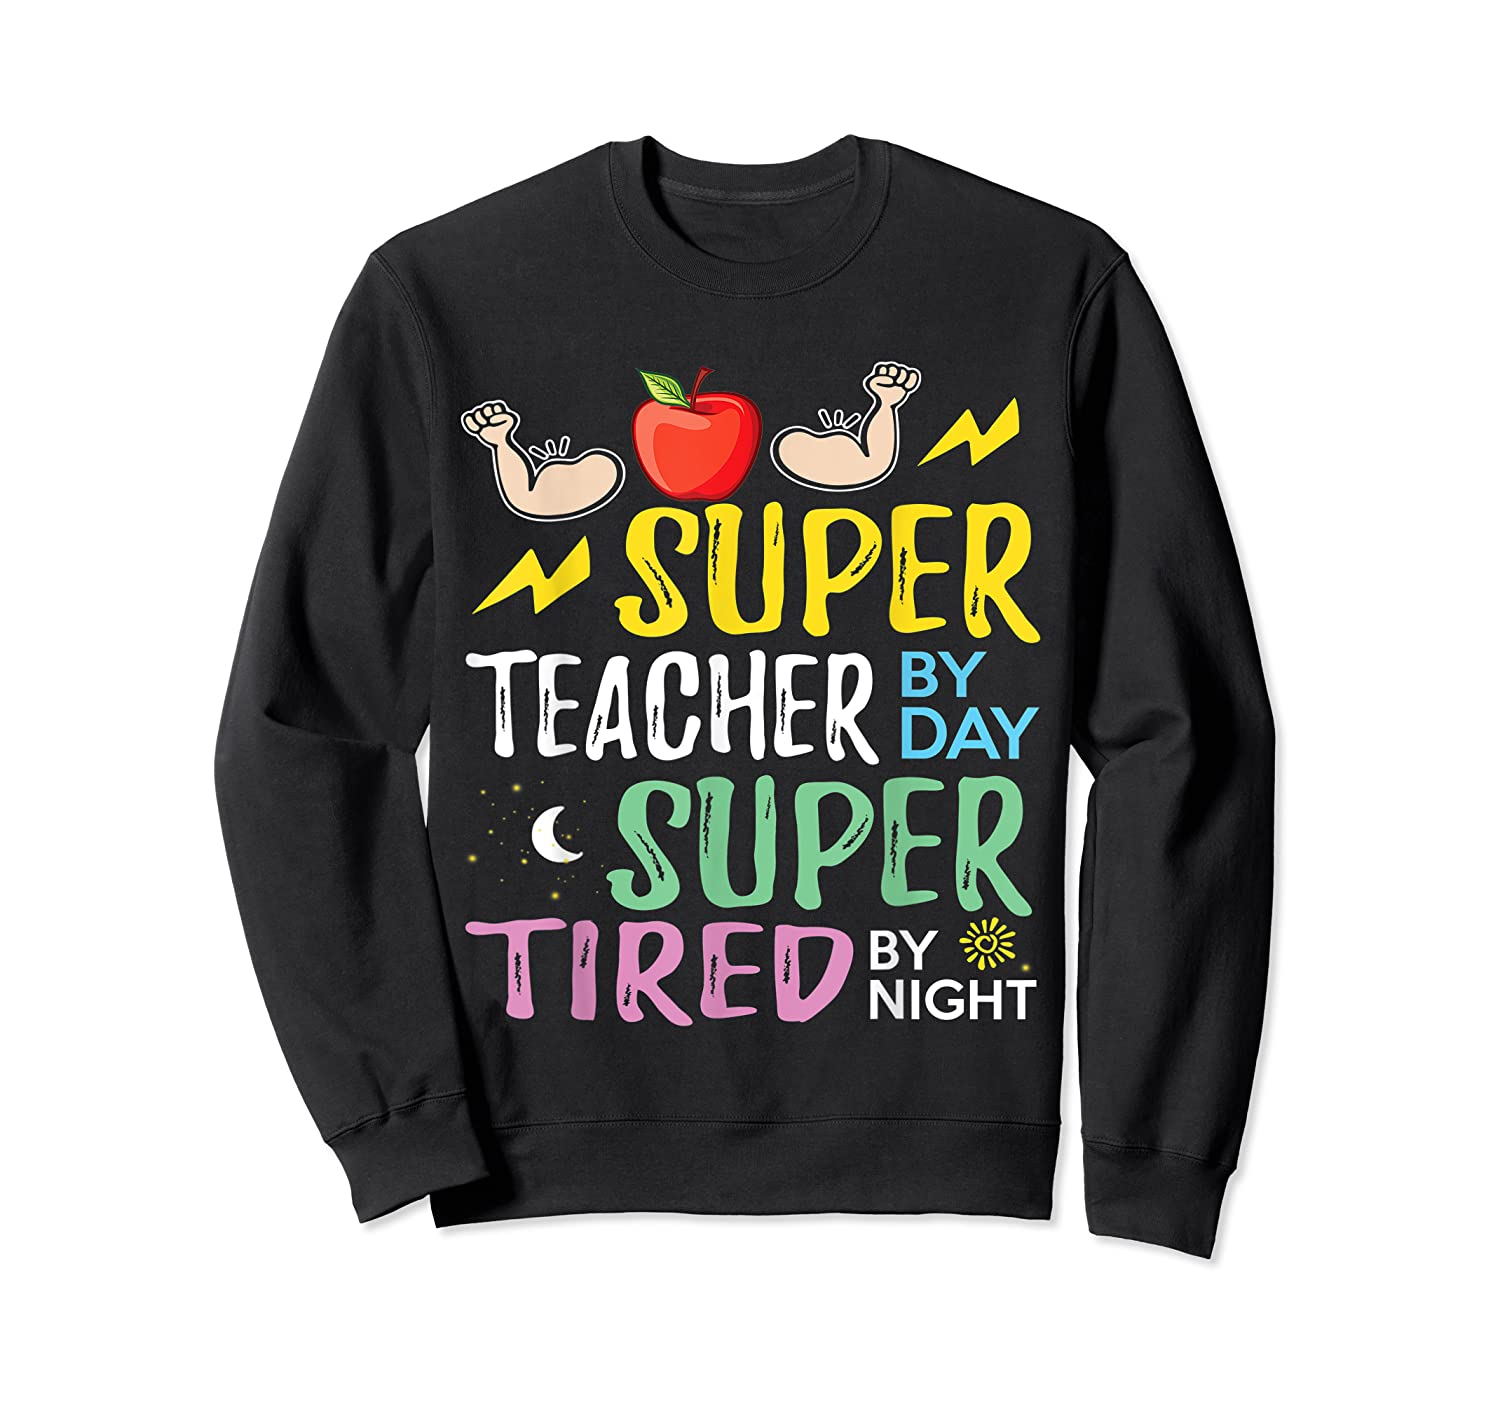 Super Tea By Day Super Tired By Night Cute Gift T-shirt Crewneck Sweater